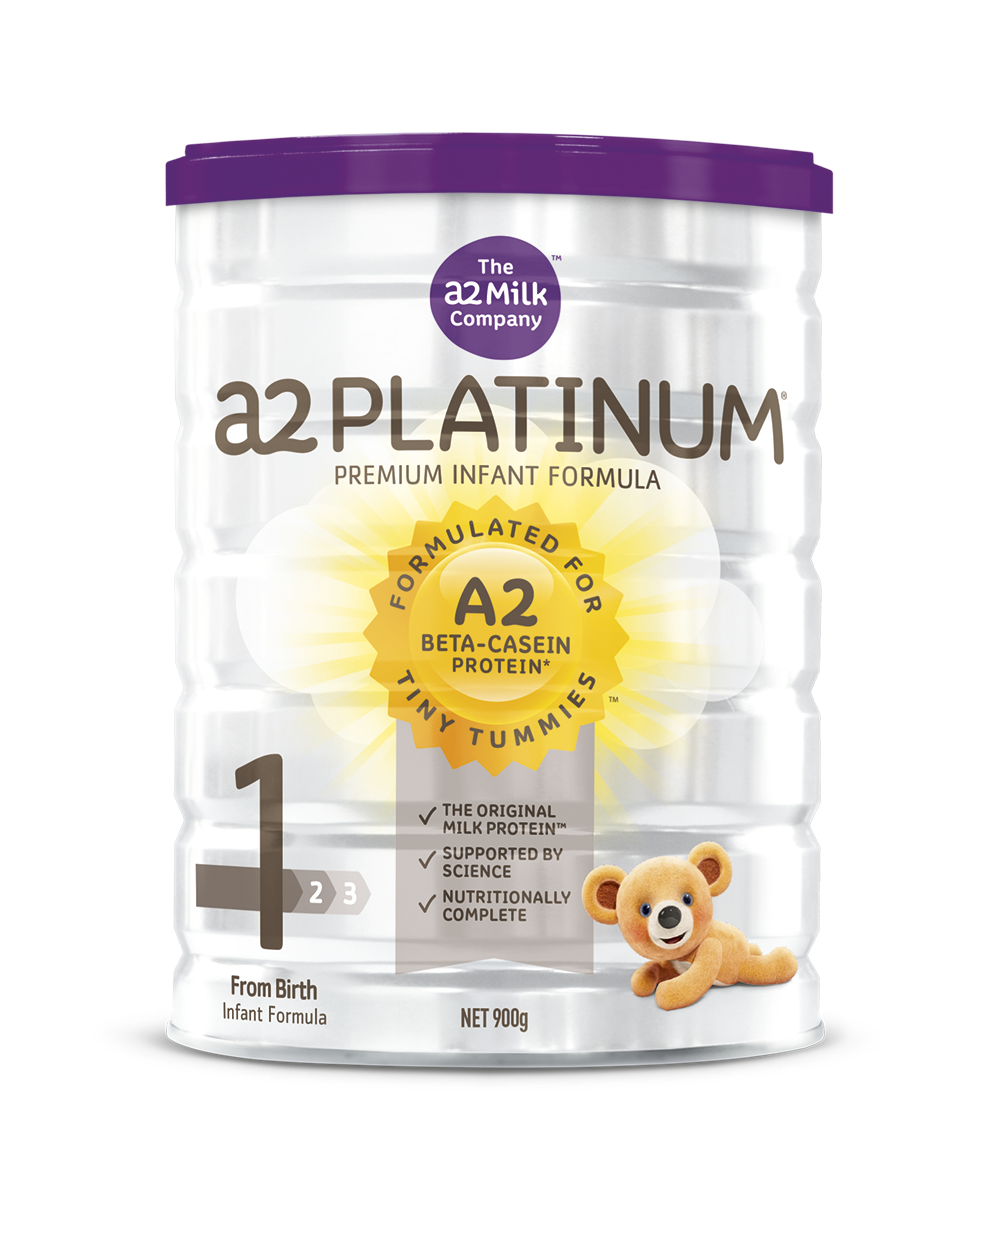 Step One a2 PLATINUM Premium Infant Formula